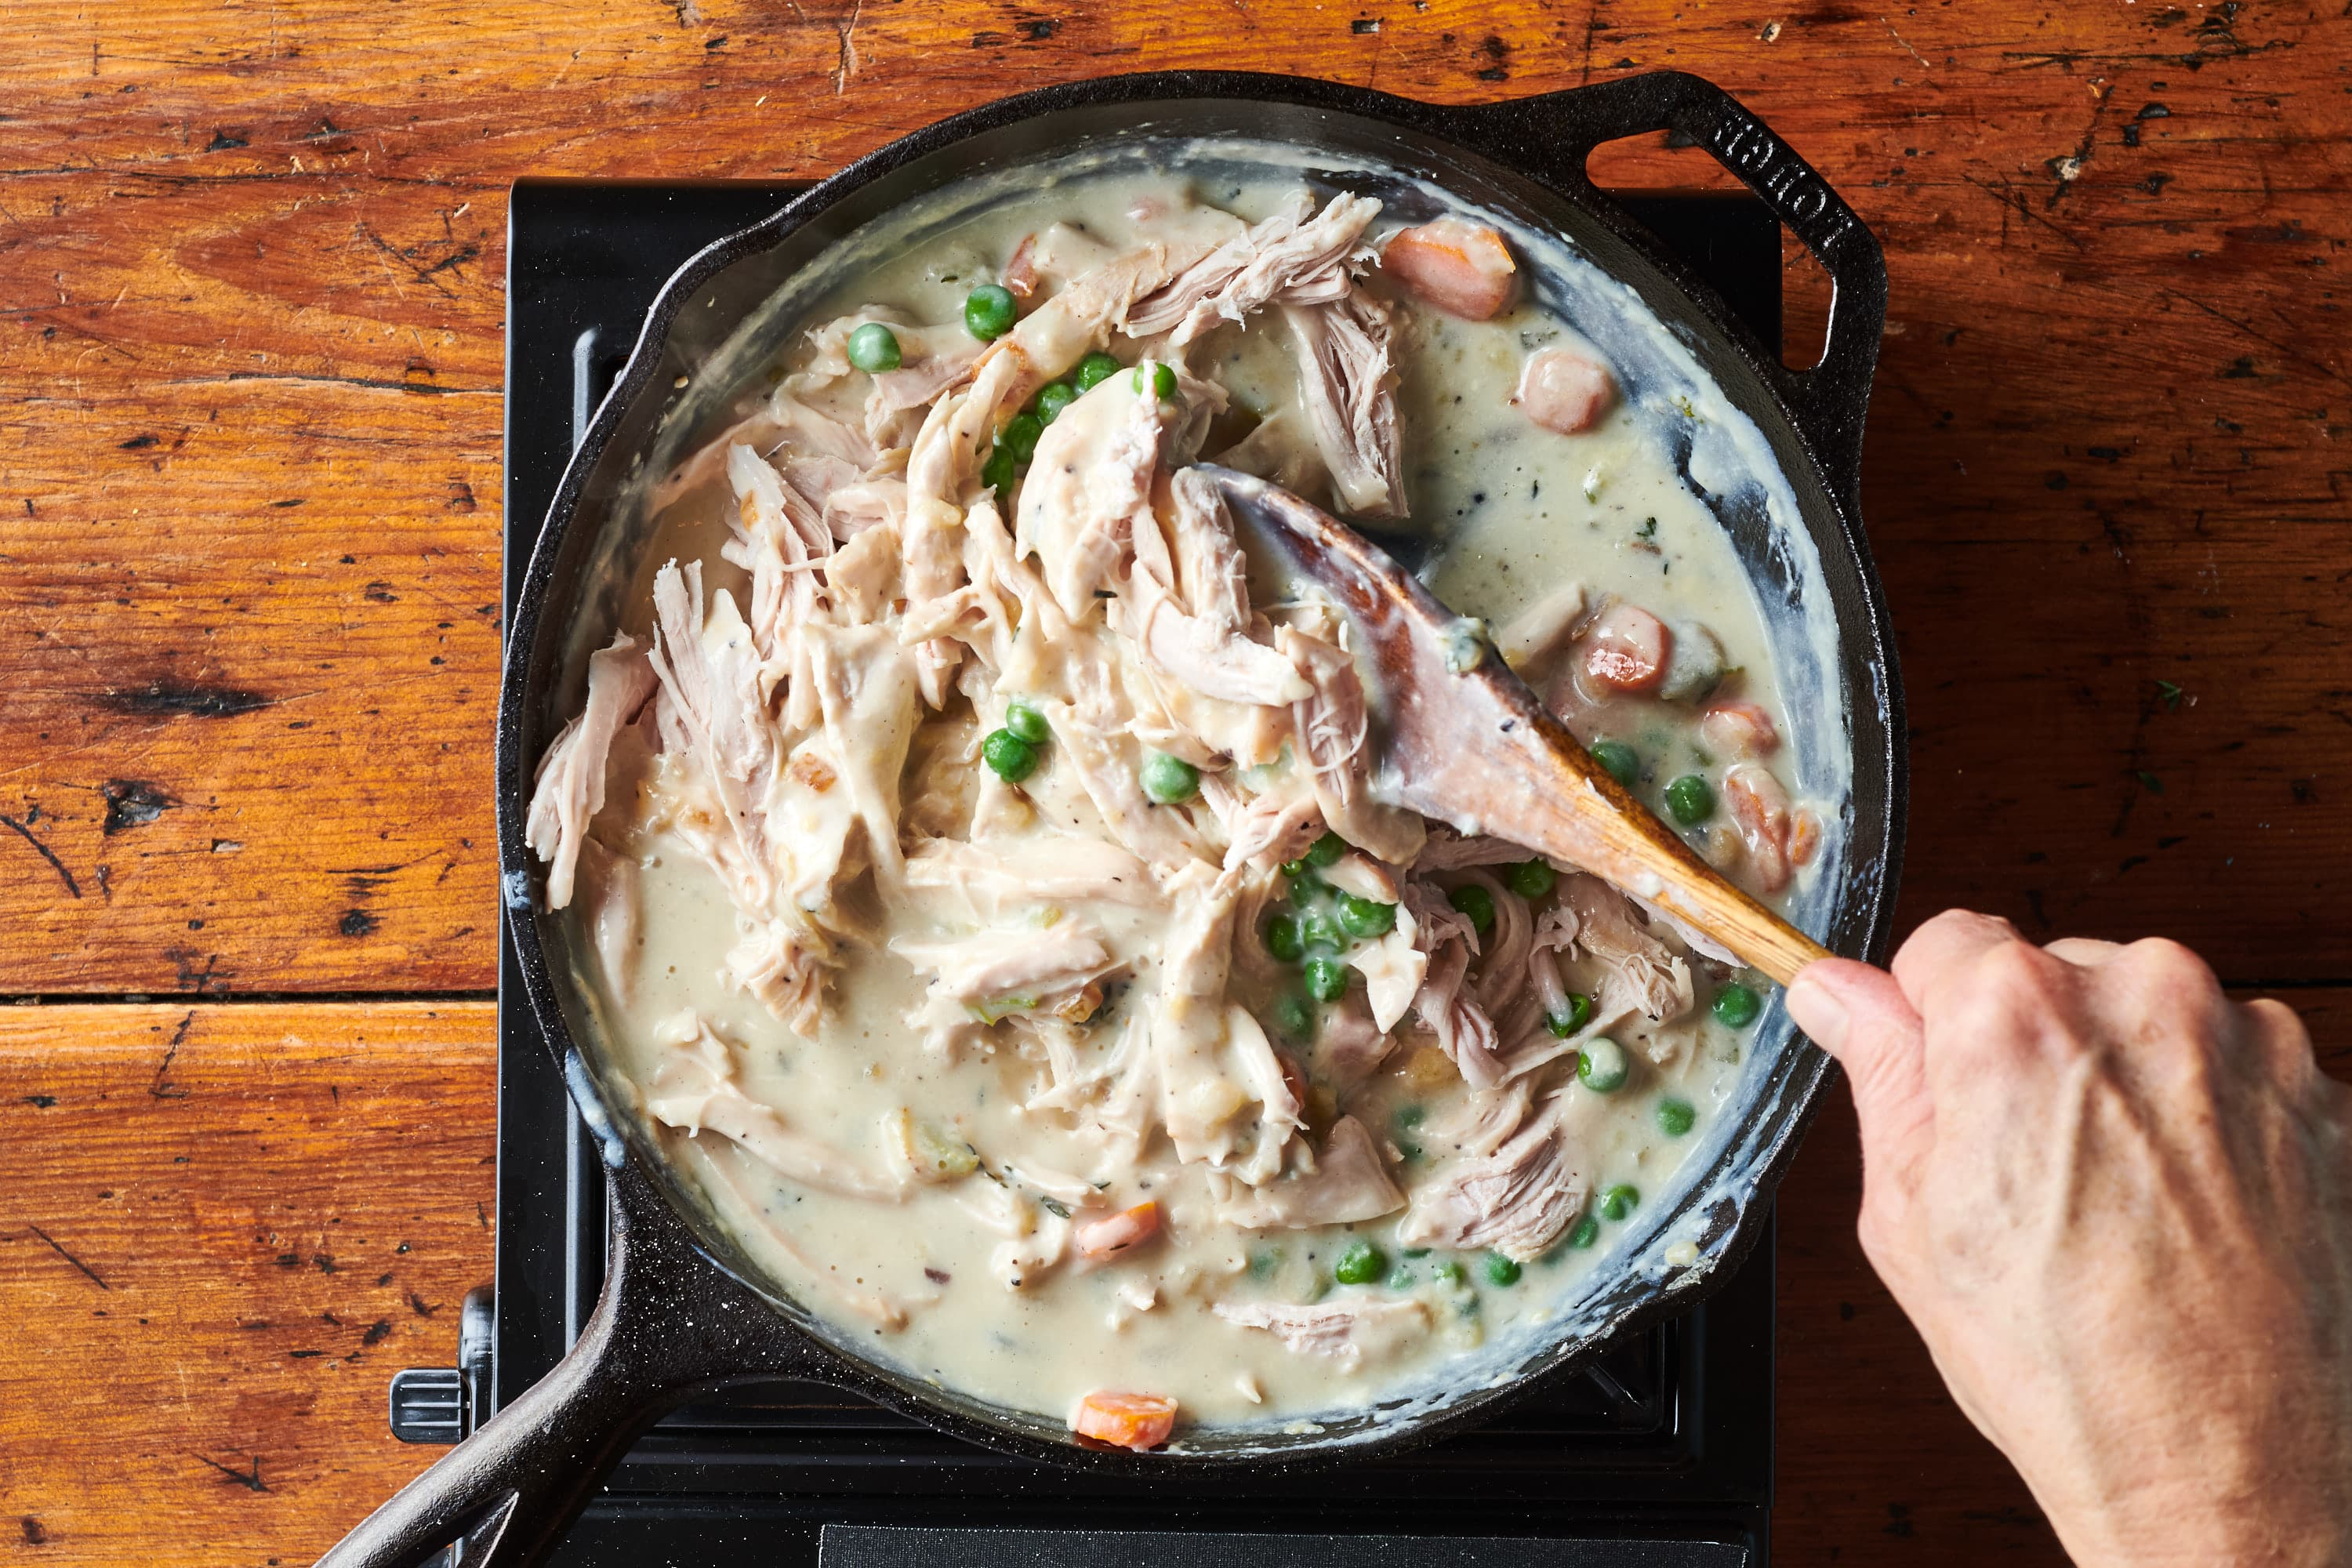 Turkey stirred into pot pie filling cooking in skillet.